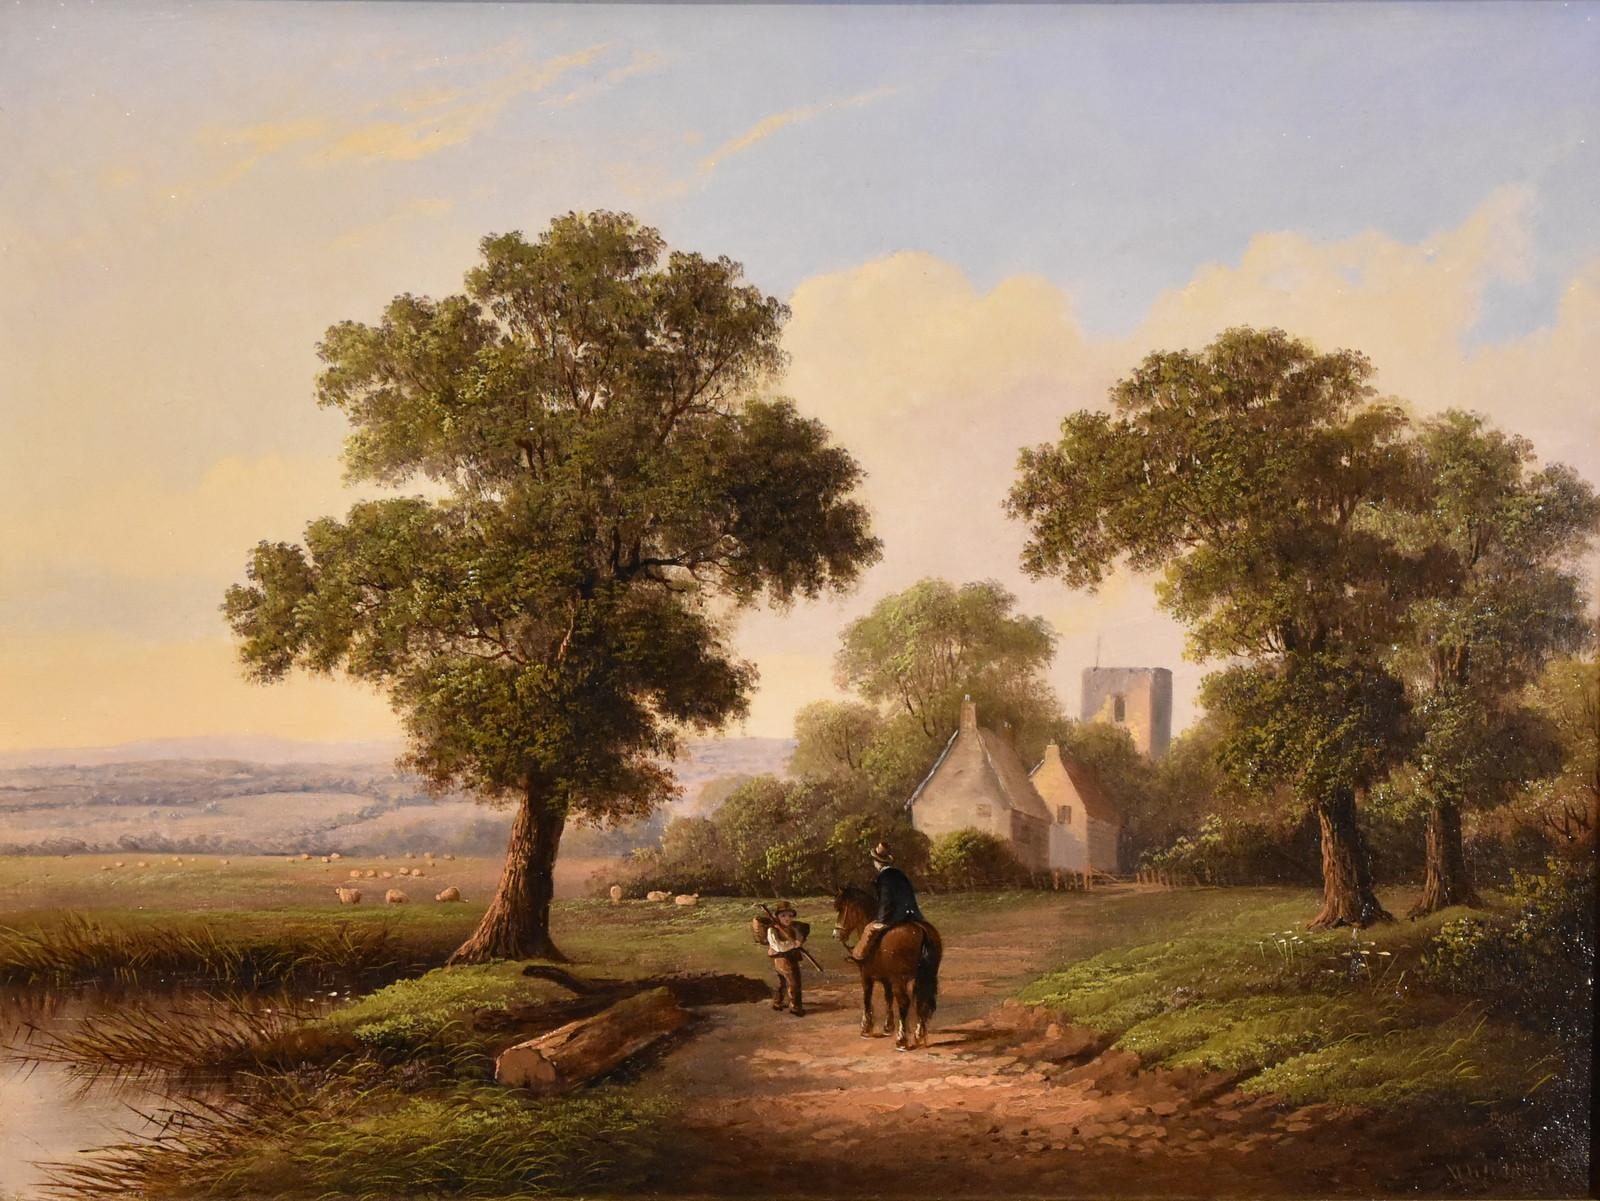 """Oil Painting by Walter Heath Williams """"A Tranquil Country Lane"""""""